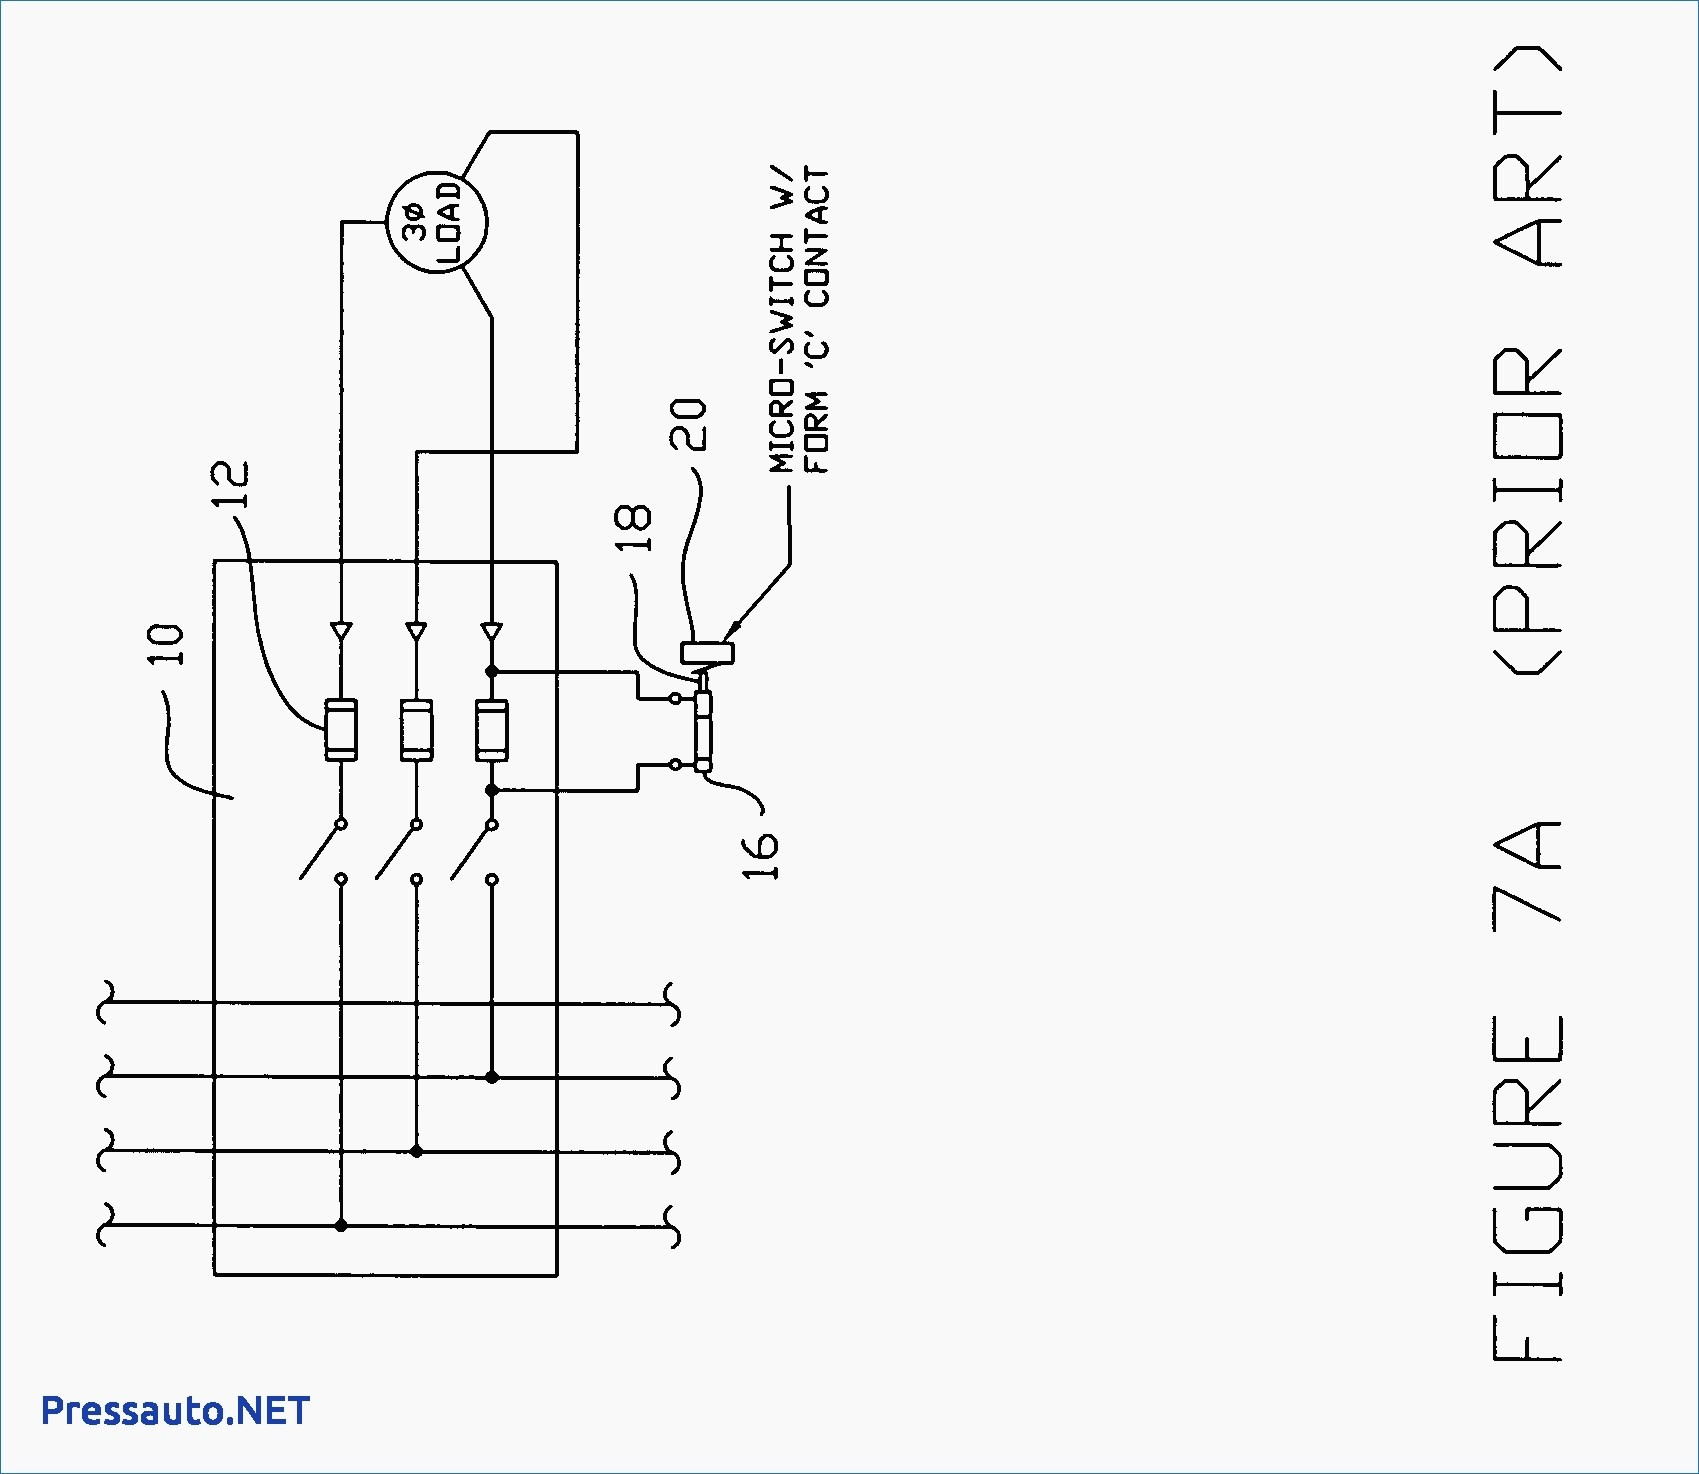 Circuit Breaker With Shunt Trip Wiring Diagram